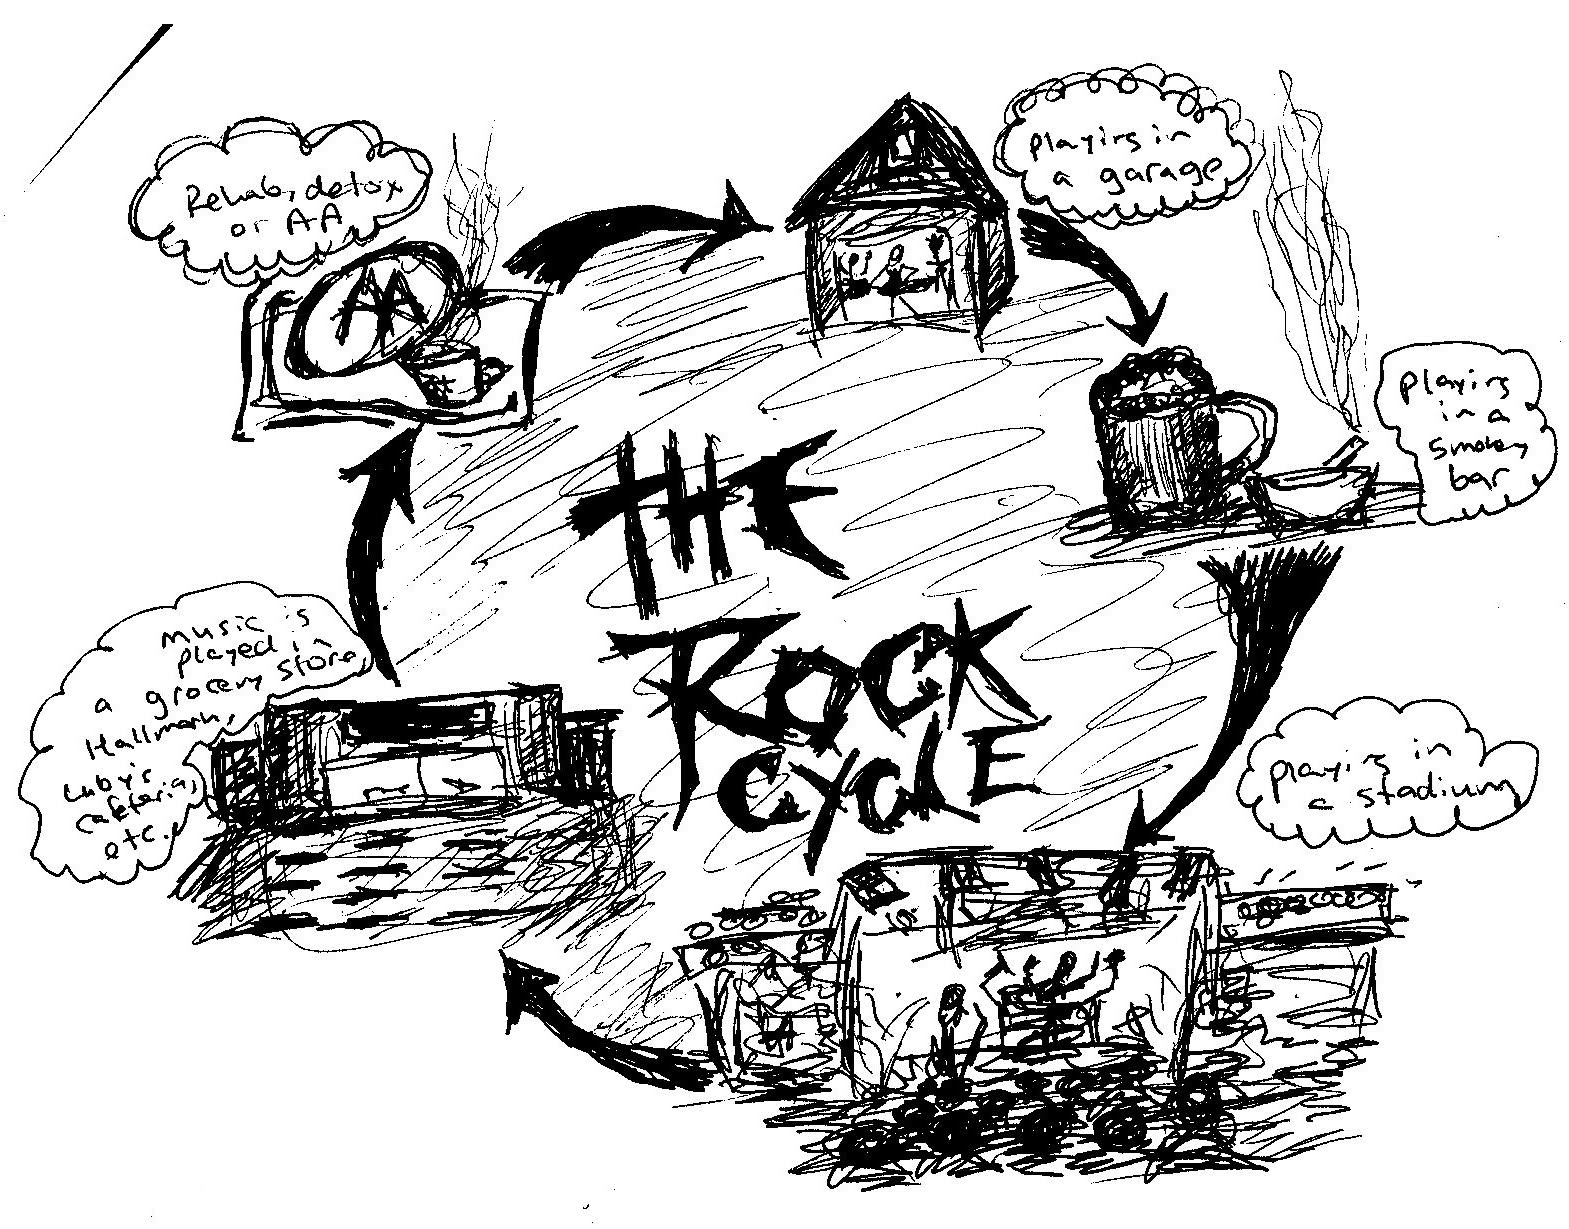 blank rock cycle diagram worksheet 22 bolt action rifle 10 best images of water coloring page